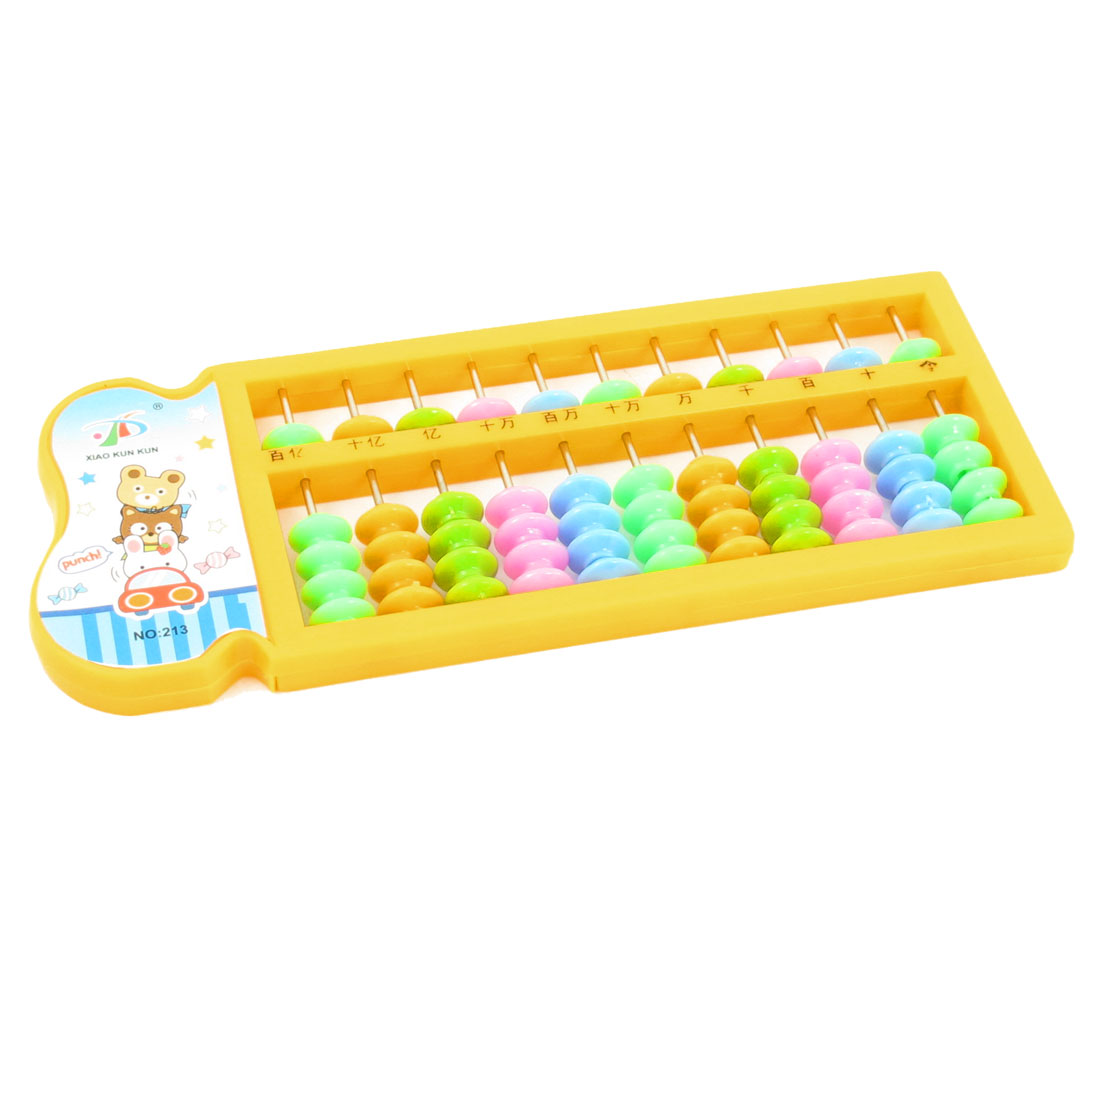 55 Earth Shape Beads Yellow Plastic Frame Japanese Soroban Abacus